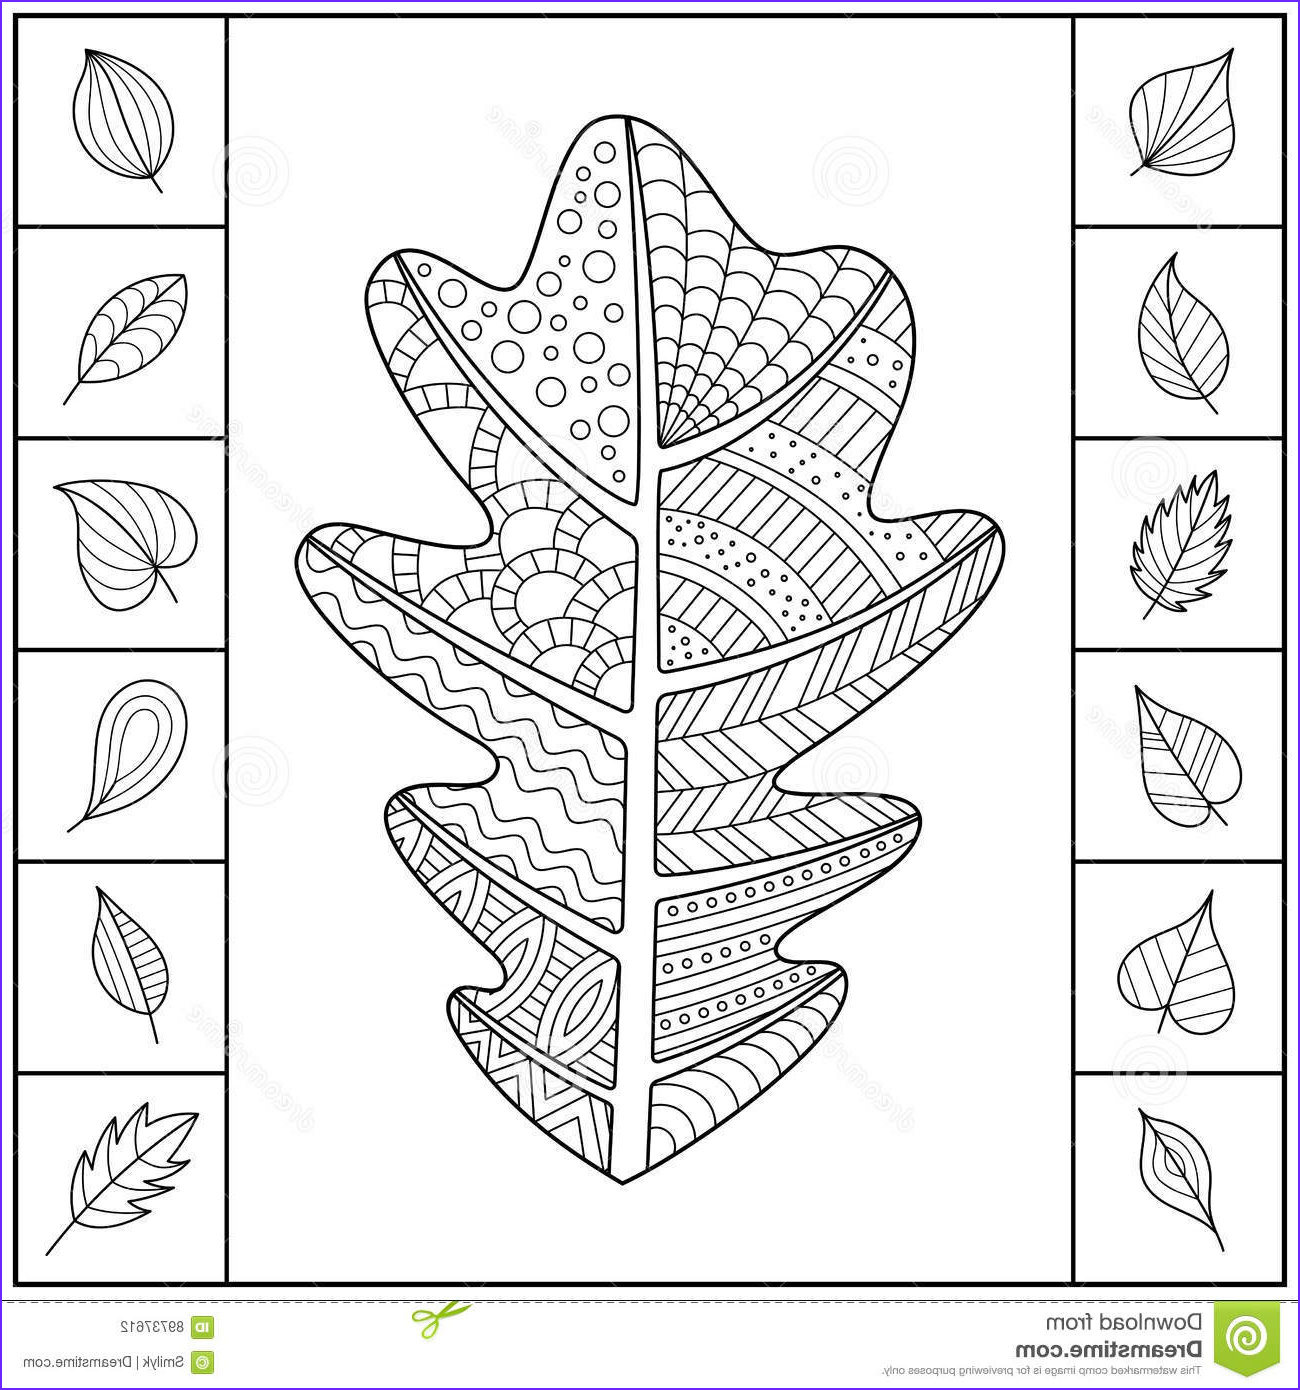 Oak Leaf Coloring Page Beautiful Photography Uncolored Patterned Oak Leaf and Different Simple Leaves